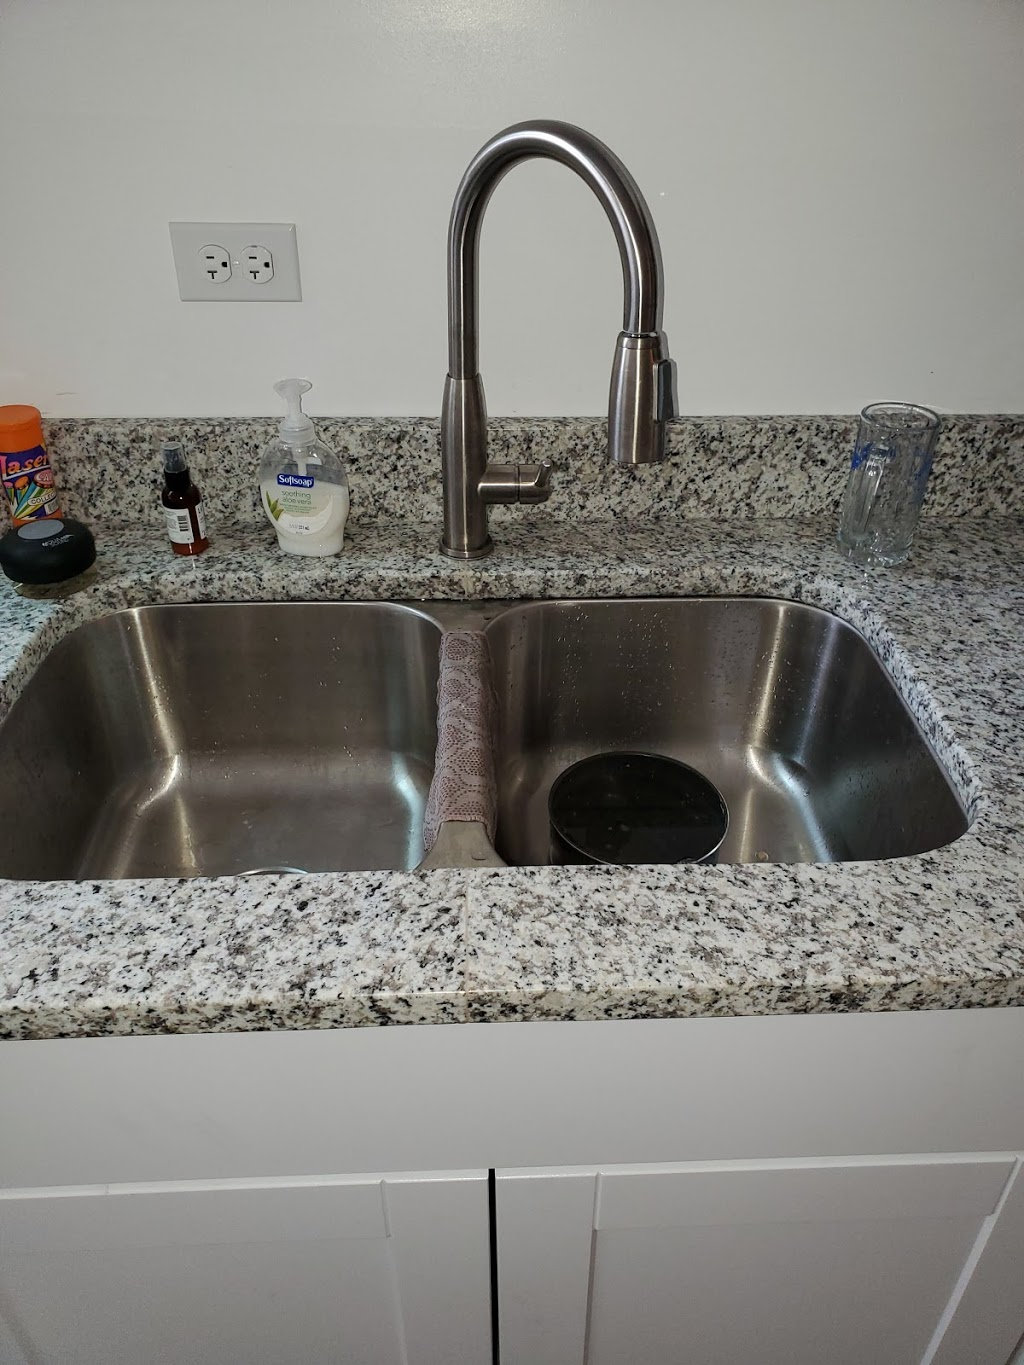 I & S General Plumbing LLC - plumber  | Photo 2 of 7 | Address: 1540 S Kilbourn Ave, Chicago, IL 60623, USA | Phone: (312) 763-0346